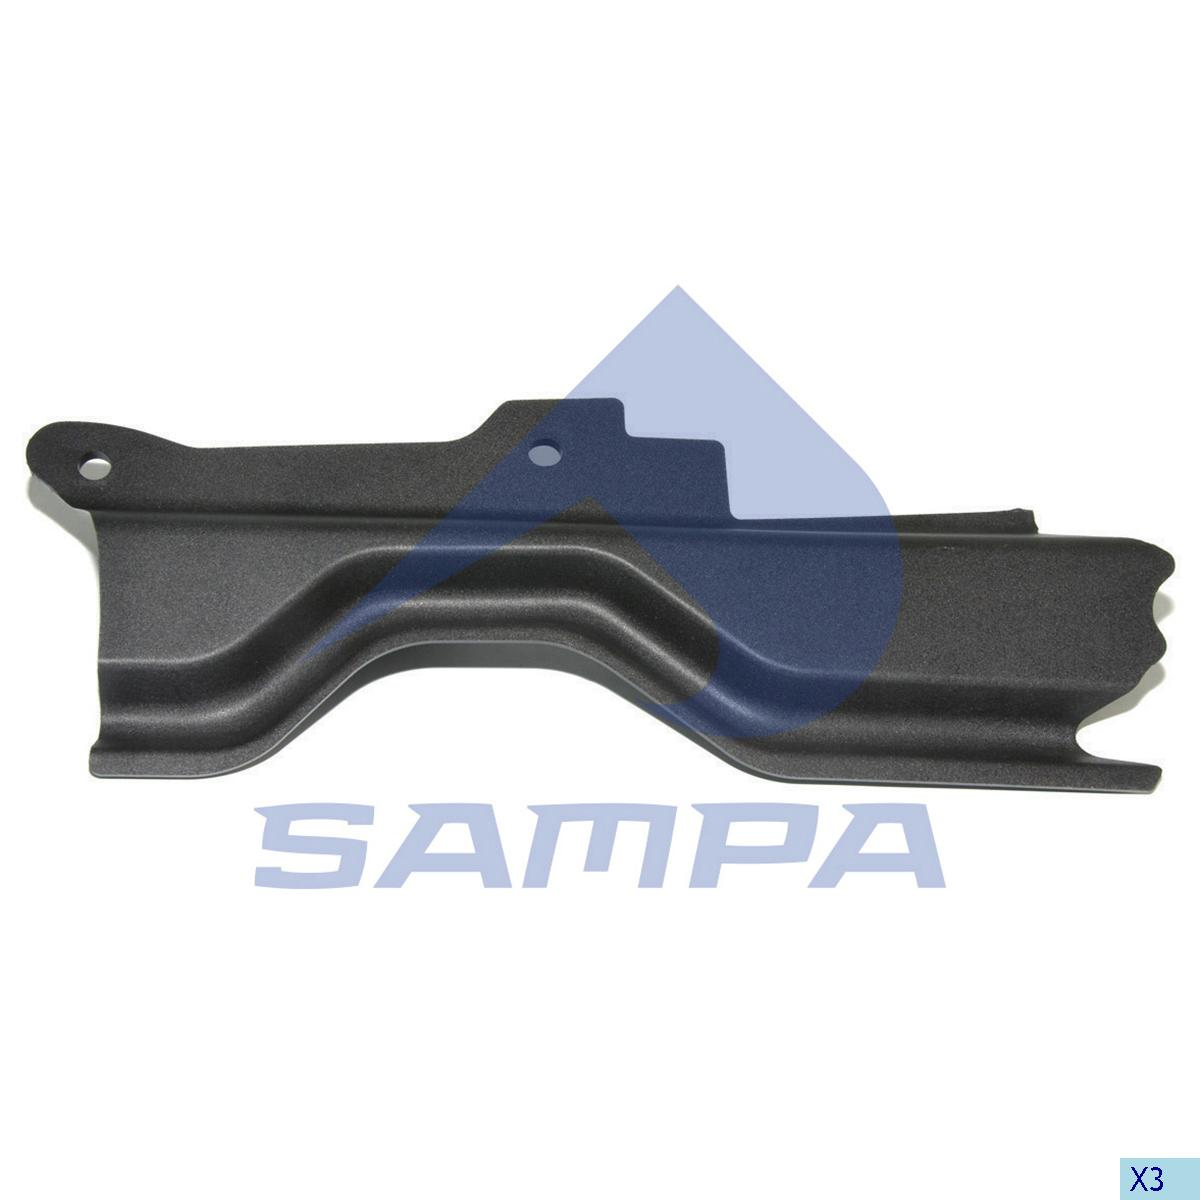 Cover, Step, Scania, Cab